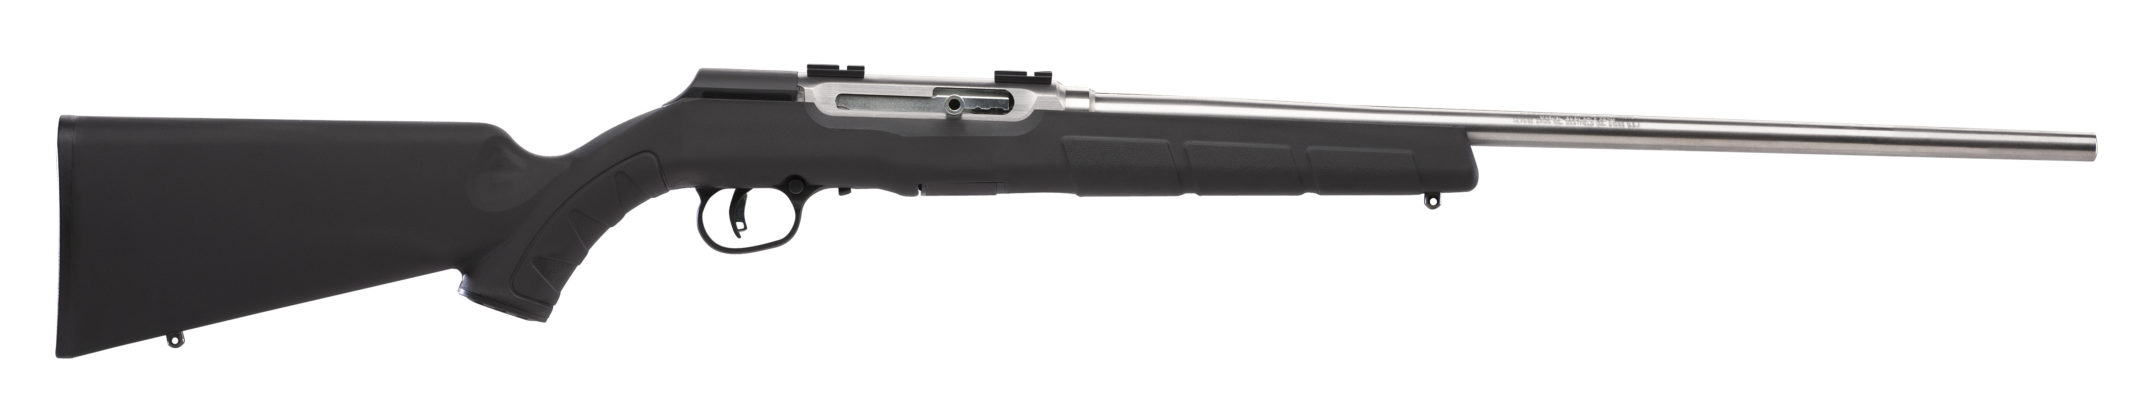 A22 Stainless Savage